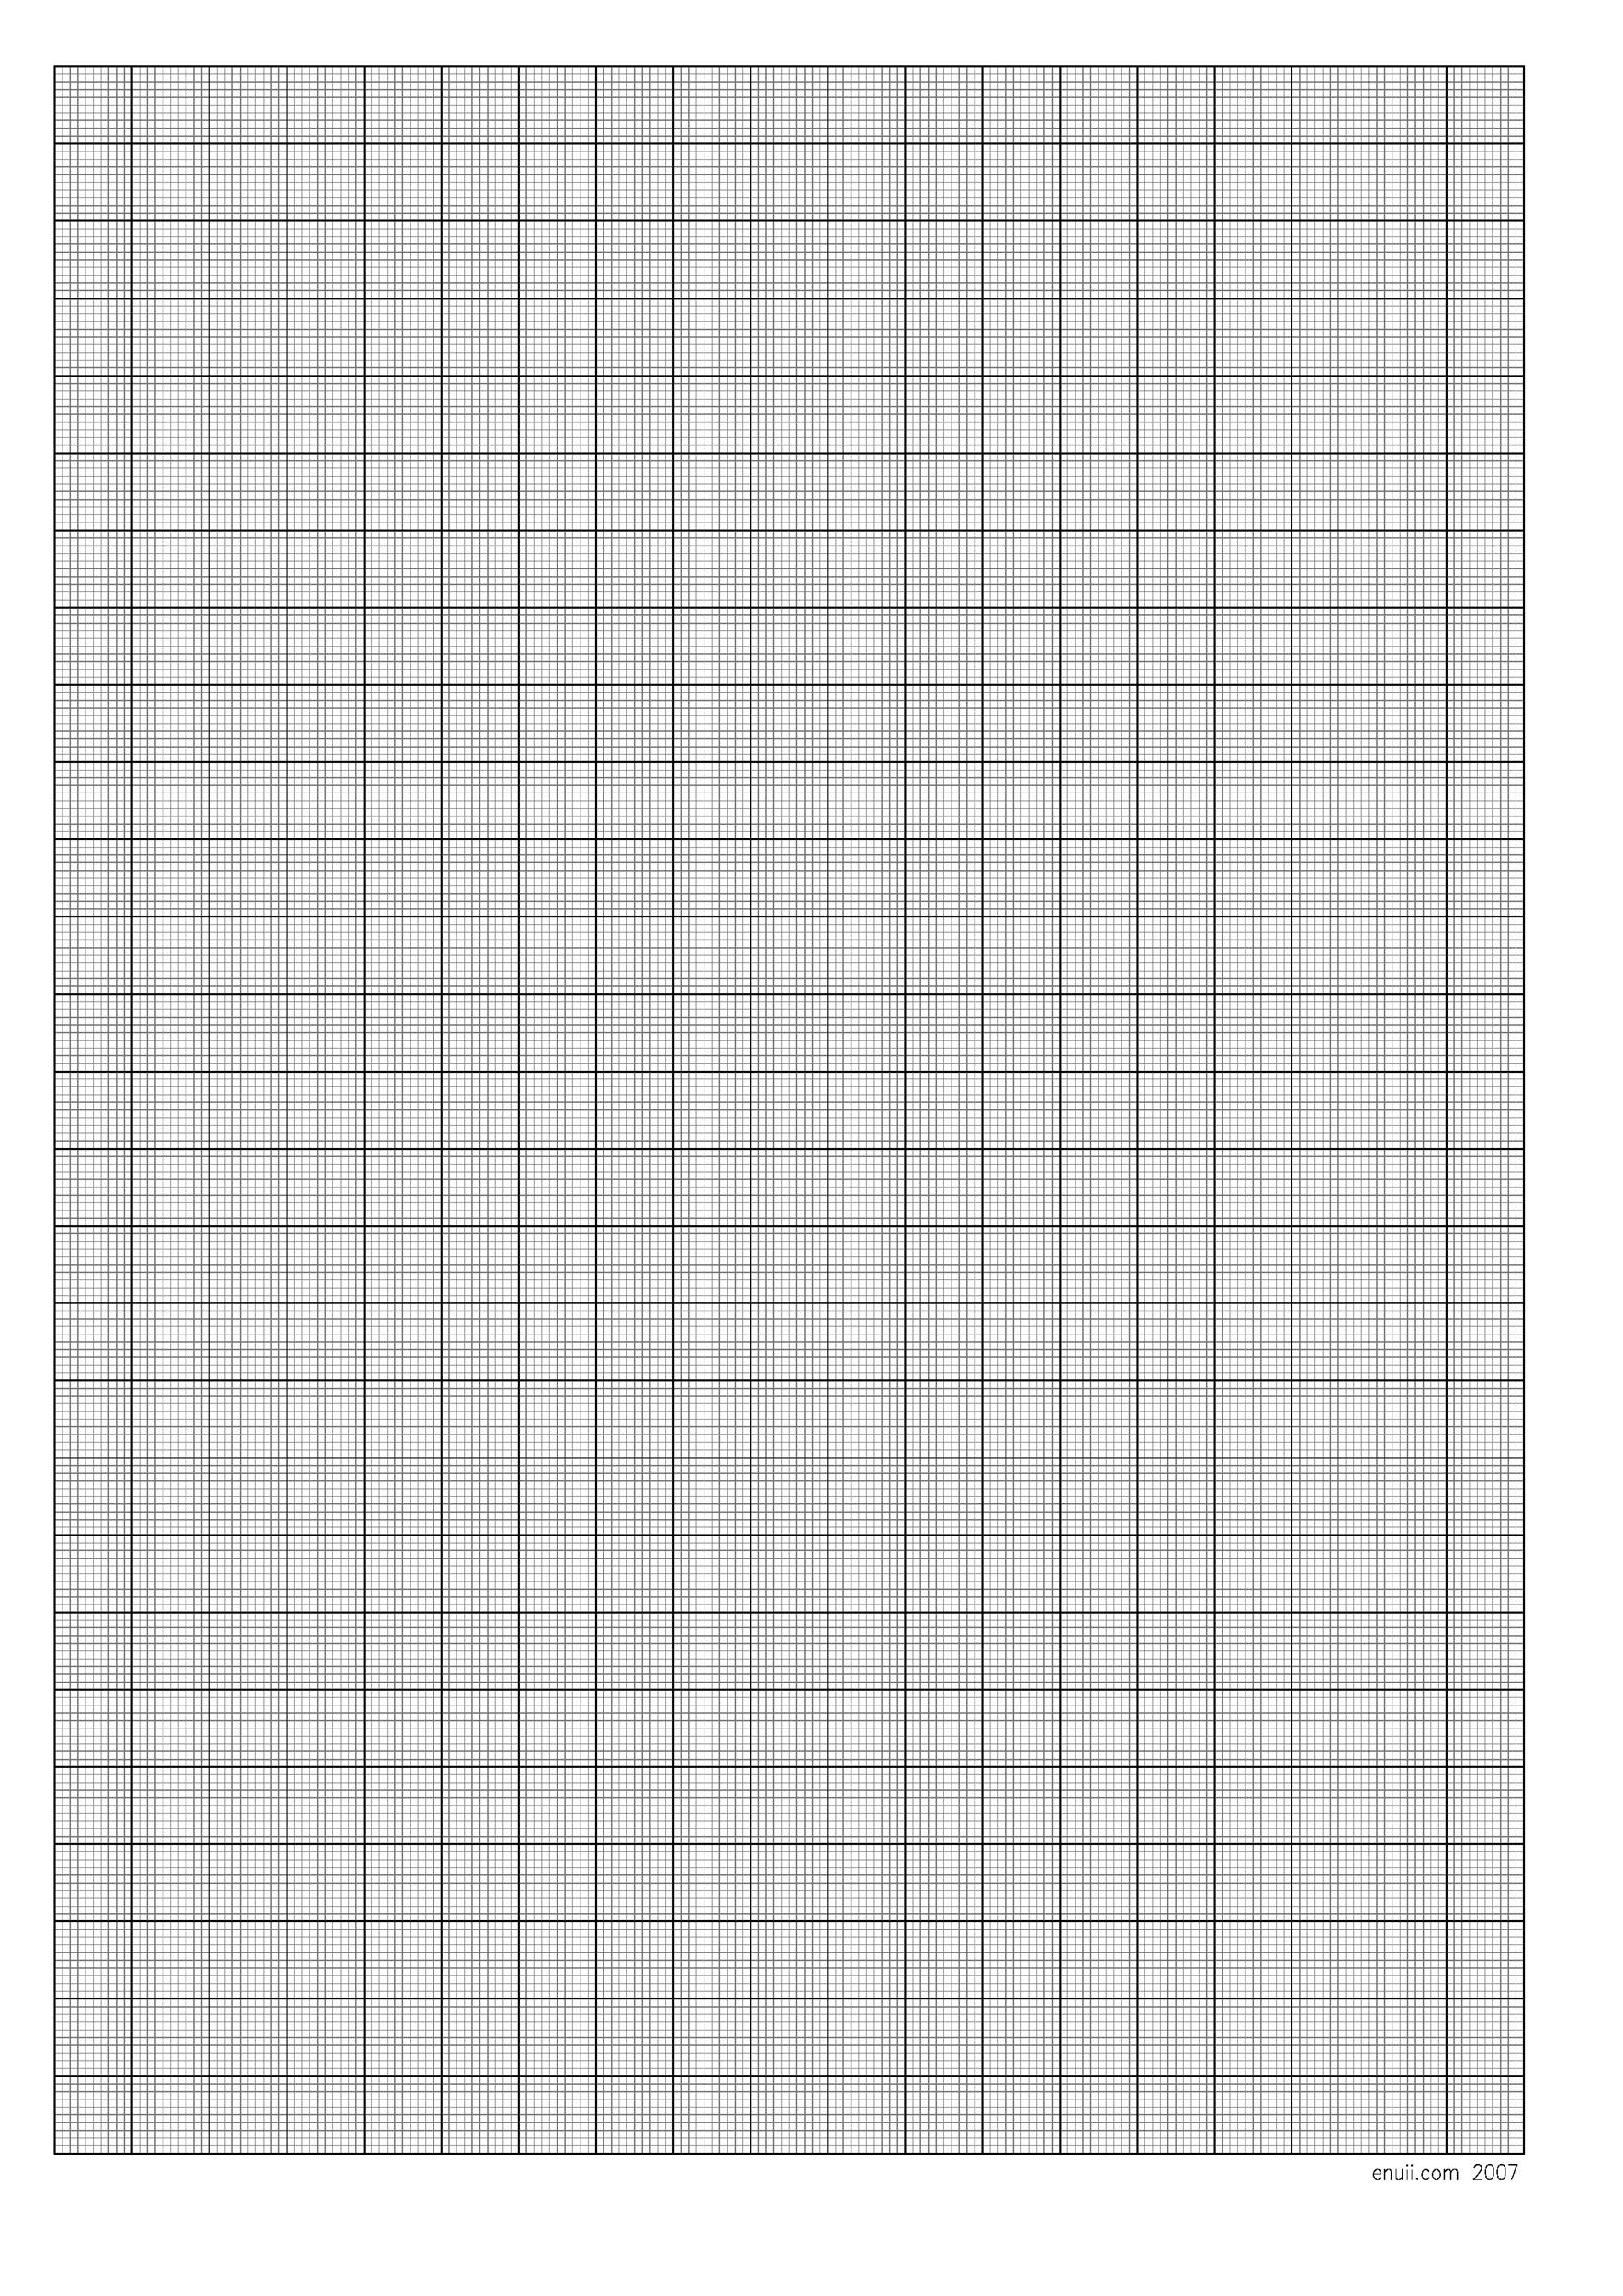 Superb Printable Graph Paper Template 02 Within Printable Blank Graph Paper